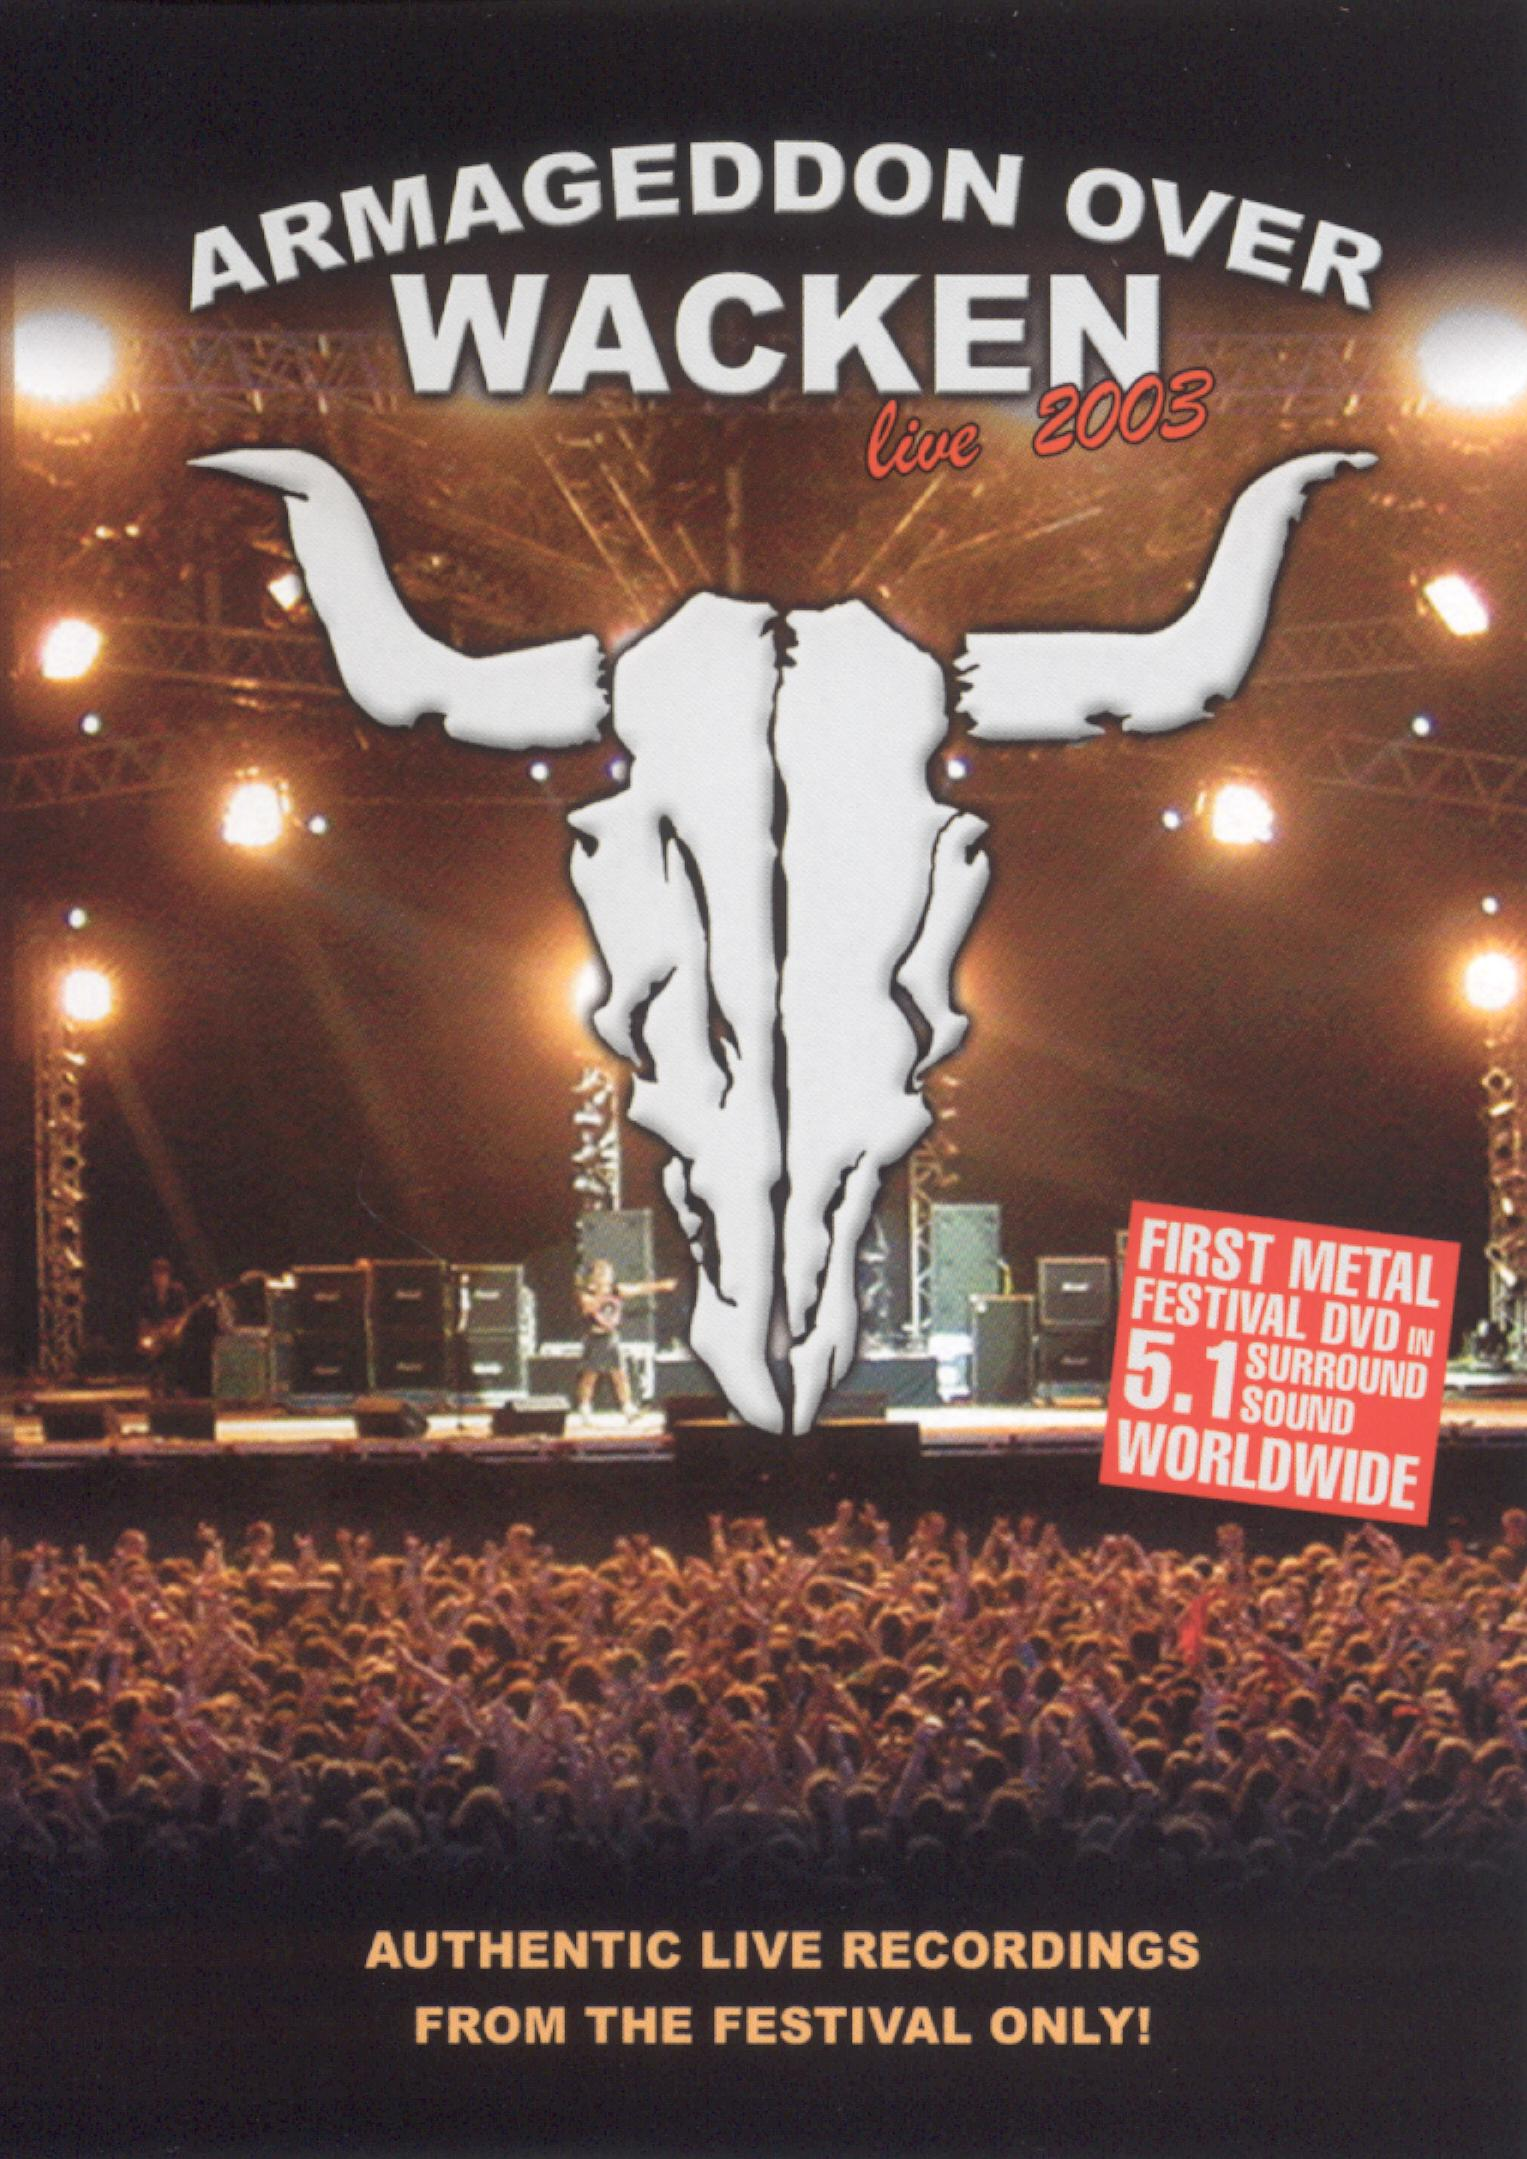 Armageddon Over Wacken: Live 2003